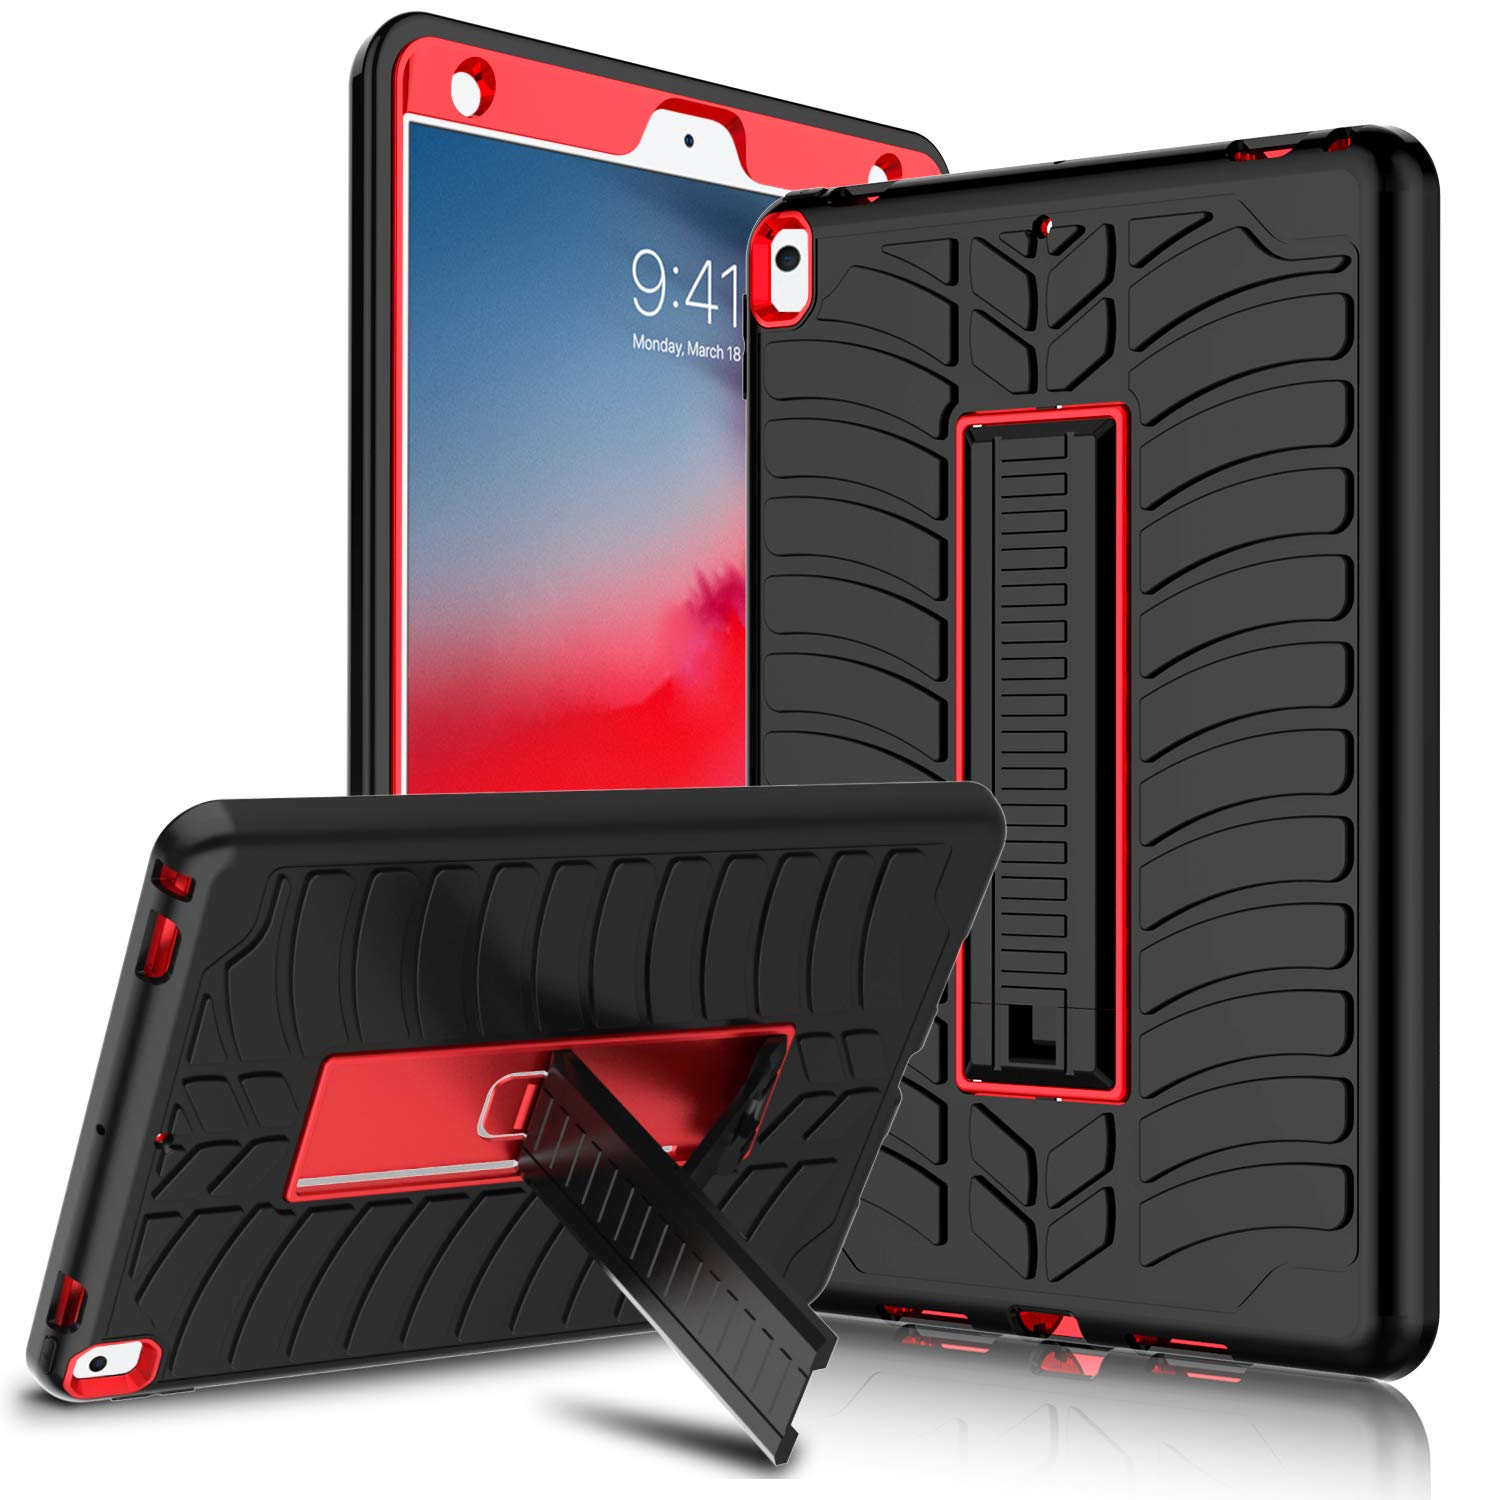 """Venoro iPad Air 3 Case 10.5, iPad Pro 10.5 Case, Kickstand Shockproof Full-Body Protective Case Cover for Apple iPad Pro 10.5""""/iPad Air(3rd Generation) 10.5"""" 2019 (Red/Black)"""